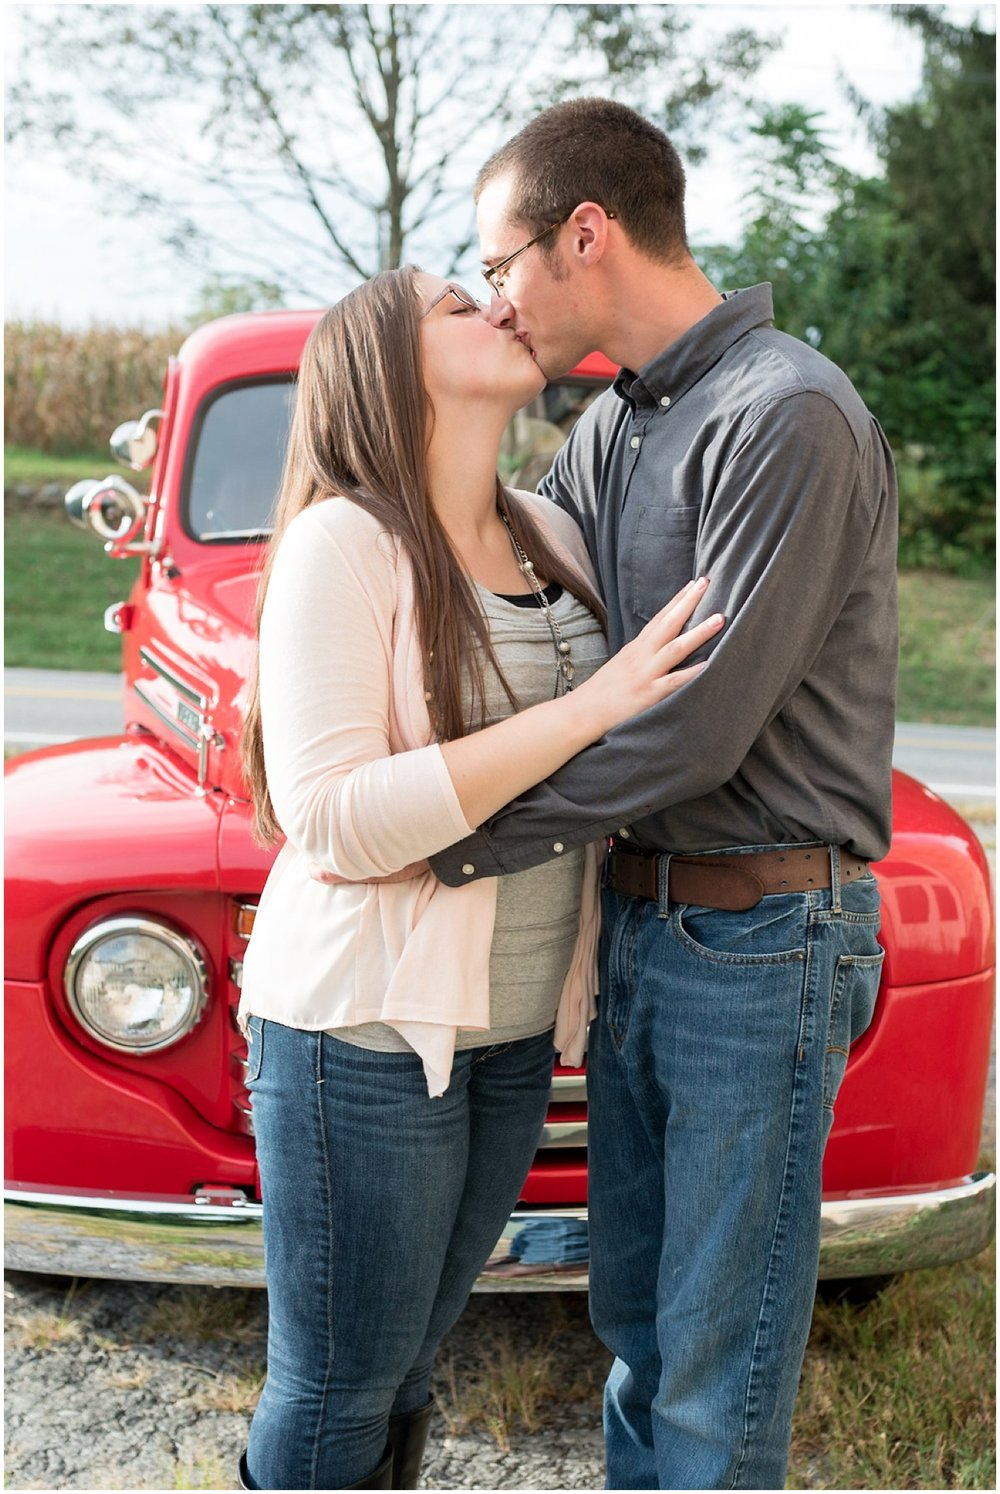 willow-tree-lancaster-pa-lancaster-county-red-truck-wedding-photography-photographer-engagement-photo